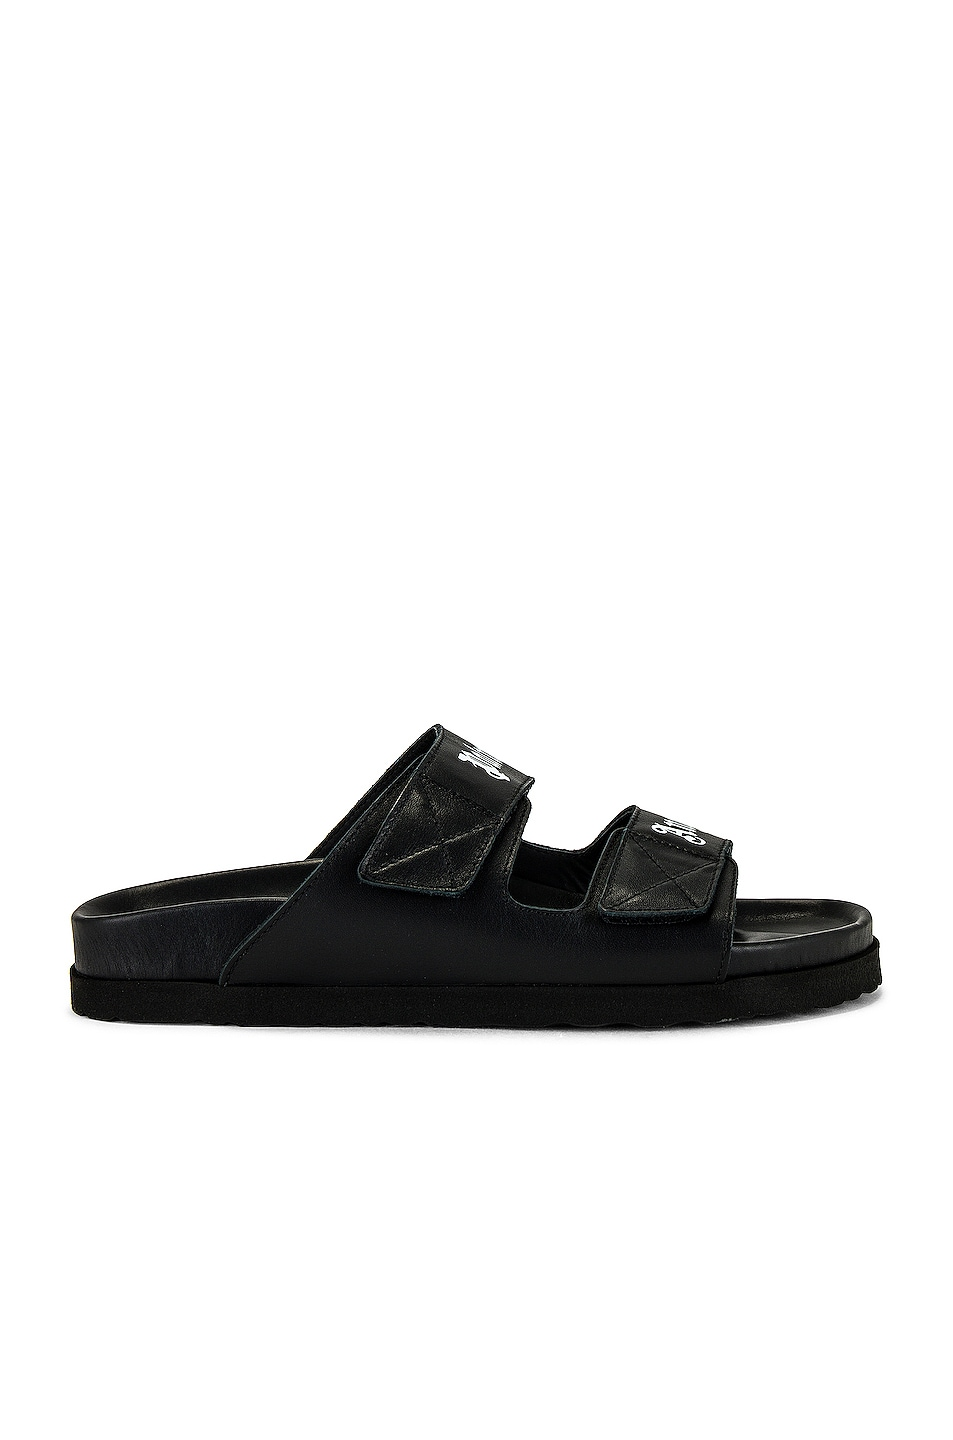 Image 1 of Palm Angels Sandals in Black